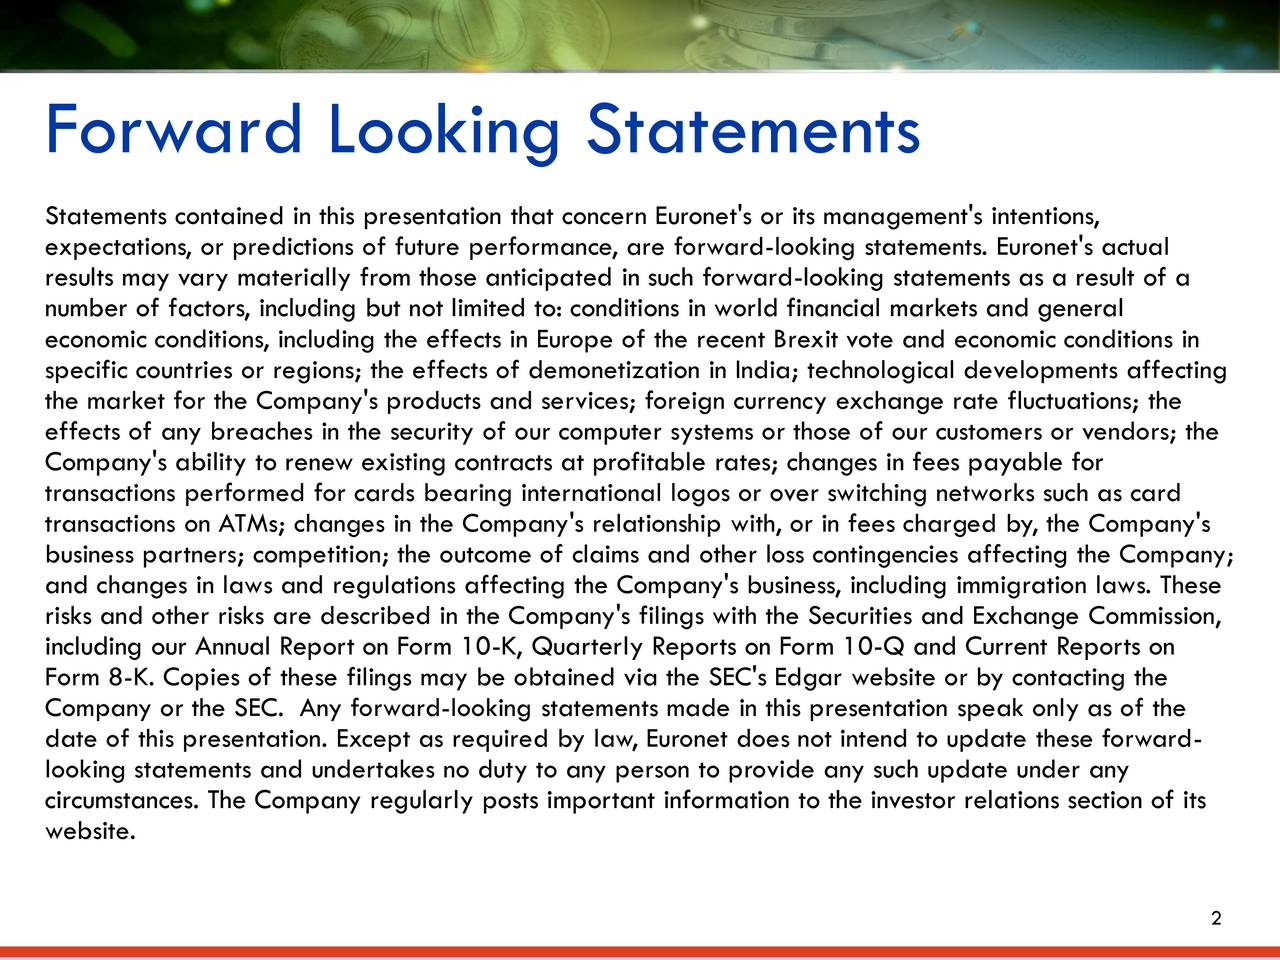 Statements contained in this presentation that concern Euronet's or its management's intentions, expectations, or predictions of future performance, are forward-looking statements. Euronet's actual results may vary materially from those anticipated in such forward-looking statements as a result of a number of factors, including but not limited to: conditions in world financial markets and general economic conditions, including the effects in Europe of the recent Brexit vote and economic conditions in specific countries or regions; the effects of demonetization in India; technological developments affecting the market for the Company's products and services; foreign currency exchange rate fluctuations; the effects of any breaches in the security of our computer systems or those of our customers or vendors; the Company's ability to renew existing contracts at profitable rates; changes in fees payable for transactions performed for cards bearing international logos or over switching networks such as card transactions on ATMs; changes in the Company's relationship with, or in fees charged by, the Company's business partners; competition; the outcome of claims and other loss contingencies affecting the Company; and changes in laws and regulations affecting the Company's business, including immigration laws. These risks and other risks are described in the Company's filings with the Securities and Exchange Commission, including our Annual Report on Form 10-K, Quarterly Reports on Form 10-Q and Current Reports on Form 8-K. Copies of these filings may be obtained via the SEC's Edgar website or by contacting the Company or the SEC. Any forward-looking statements made in this presentation speak only as of the date of this presentation. Except as required by law, Euronet does not intend to update these forward- looking statements and undertakes no duty to any person to provide any such update under any circumstances. The Company regularly posts important information to the investor relations section of its website. 2